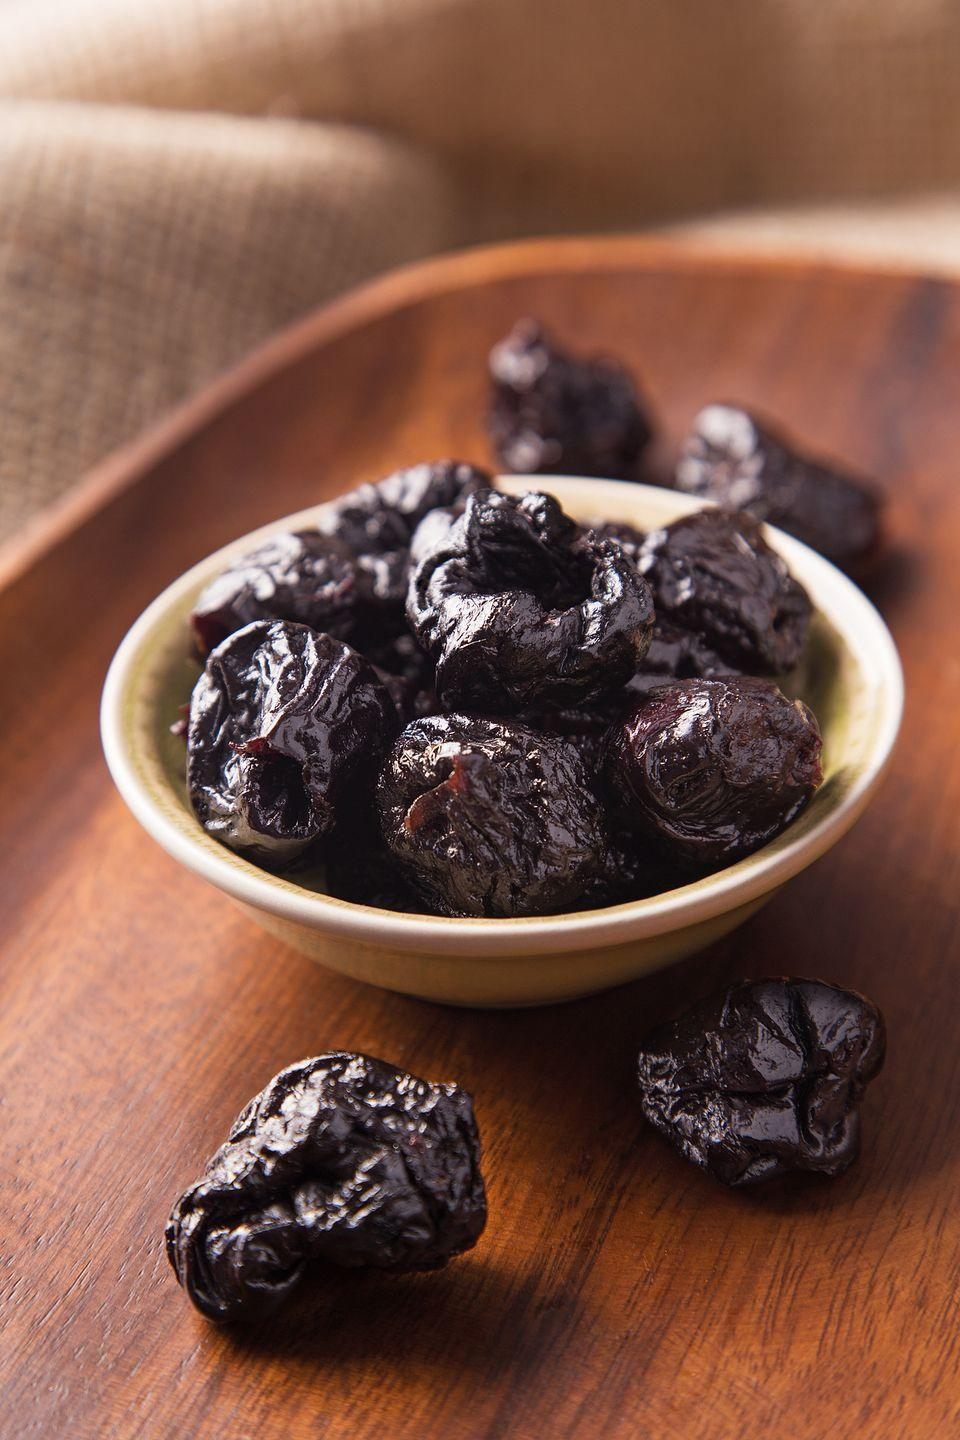 """<p>Prunes, which are dried plums, are packed with polyphenols — plant chemicals that have been shown to boost bone density by stimulating your bone-building cells, according to research published in <em><a href=""""https://www.ncbi.nlm.nih.gov/pubmed/26902092"""" rel=""""nofollow noopener"""" target=""""_blank"""" data-ylk=""""slk:Osteoporosis International"""" class=""""link rapid-noclick-resp"""">Osteoporosis International</a></em>.</p><p><strong>Recipe to try:</strong> <a href=""""https://www.womansday.com/food-recipes/food-drinks/recipes/a11652/slow-cooker-chicken-marbella-recipe-122895/"""" rel=""""nofollow noopener"""" target=""""_blank"""" data-ylk=""""slk:Slow Cooker Chicken Marbella"""" class=""""link rapid-noclick-resp"""">Slow Cooker Chicken Marbella</a></p>"""